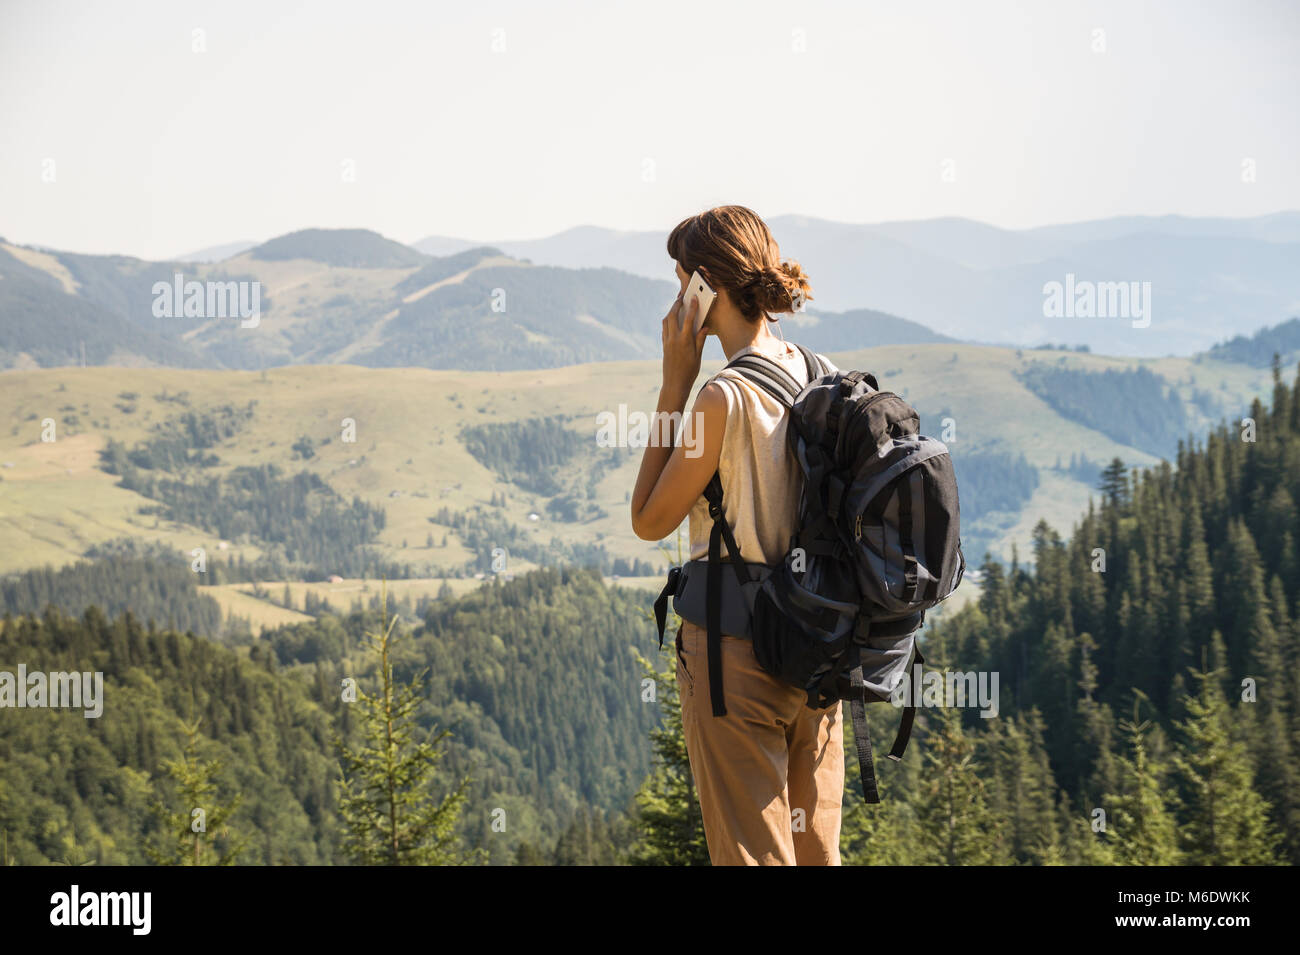 Girl with tourist rucksack on a long hiking walk talks on smartphone up in the hills - Stock Image